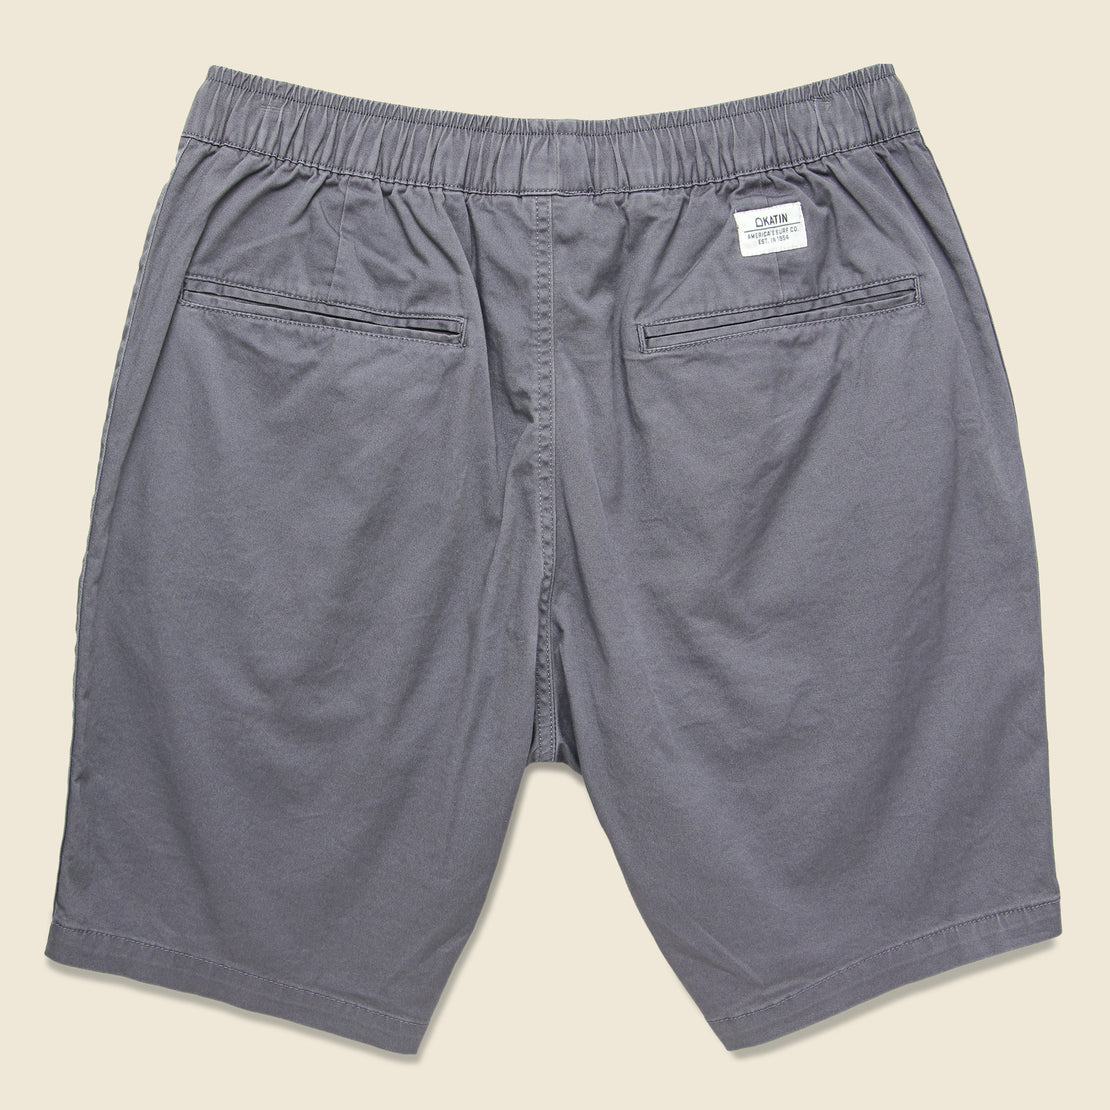 Patio Short - Lavender - Katin - STAG Provisions - Shorts - Solid